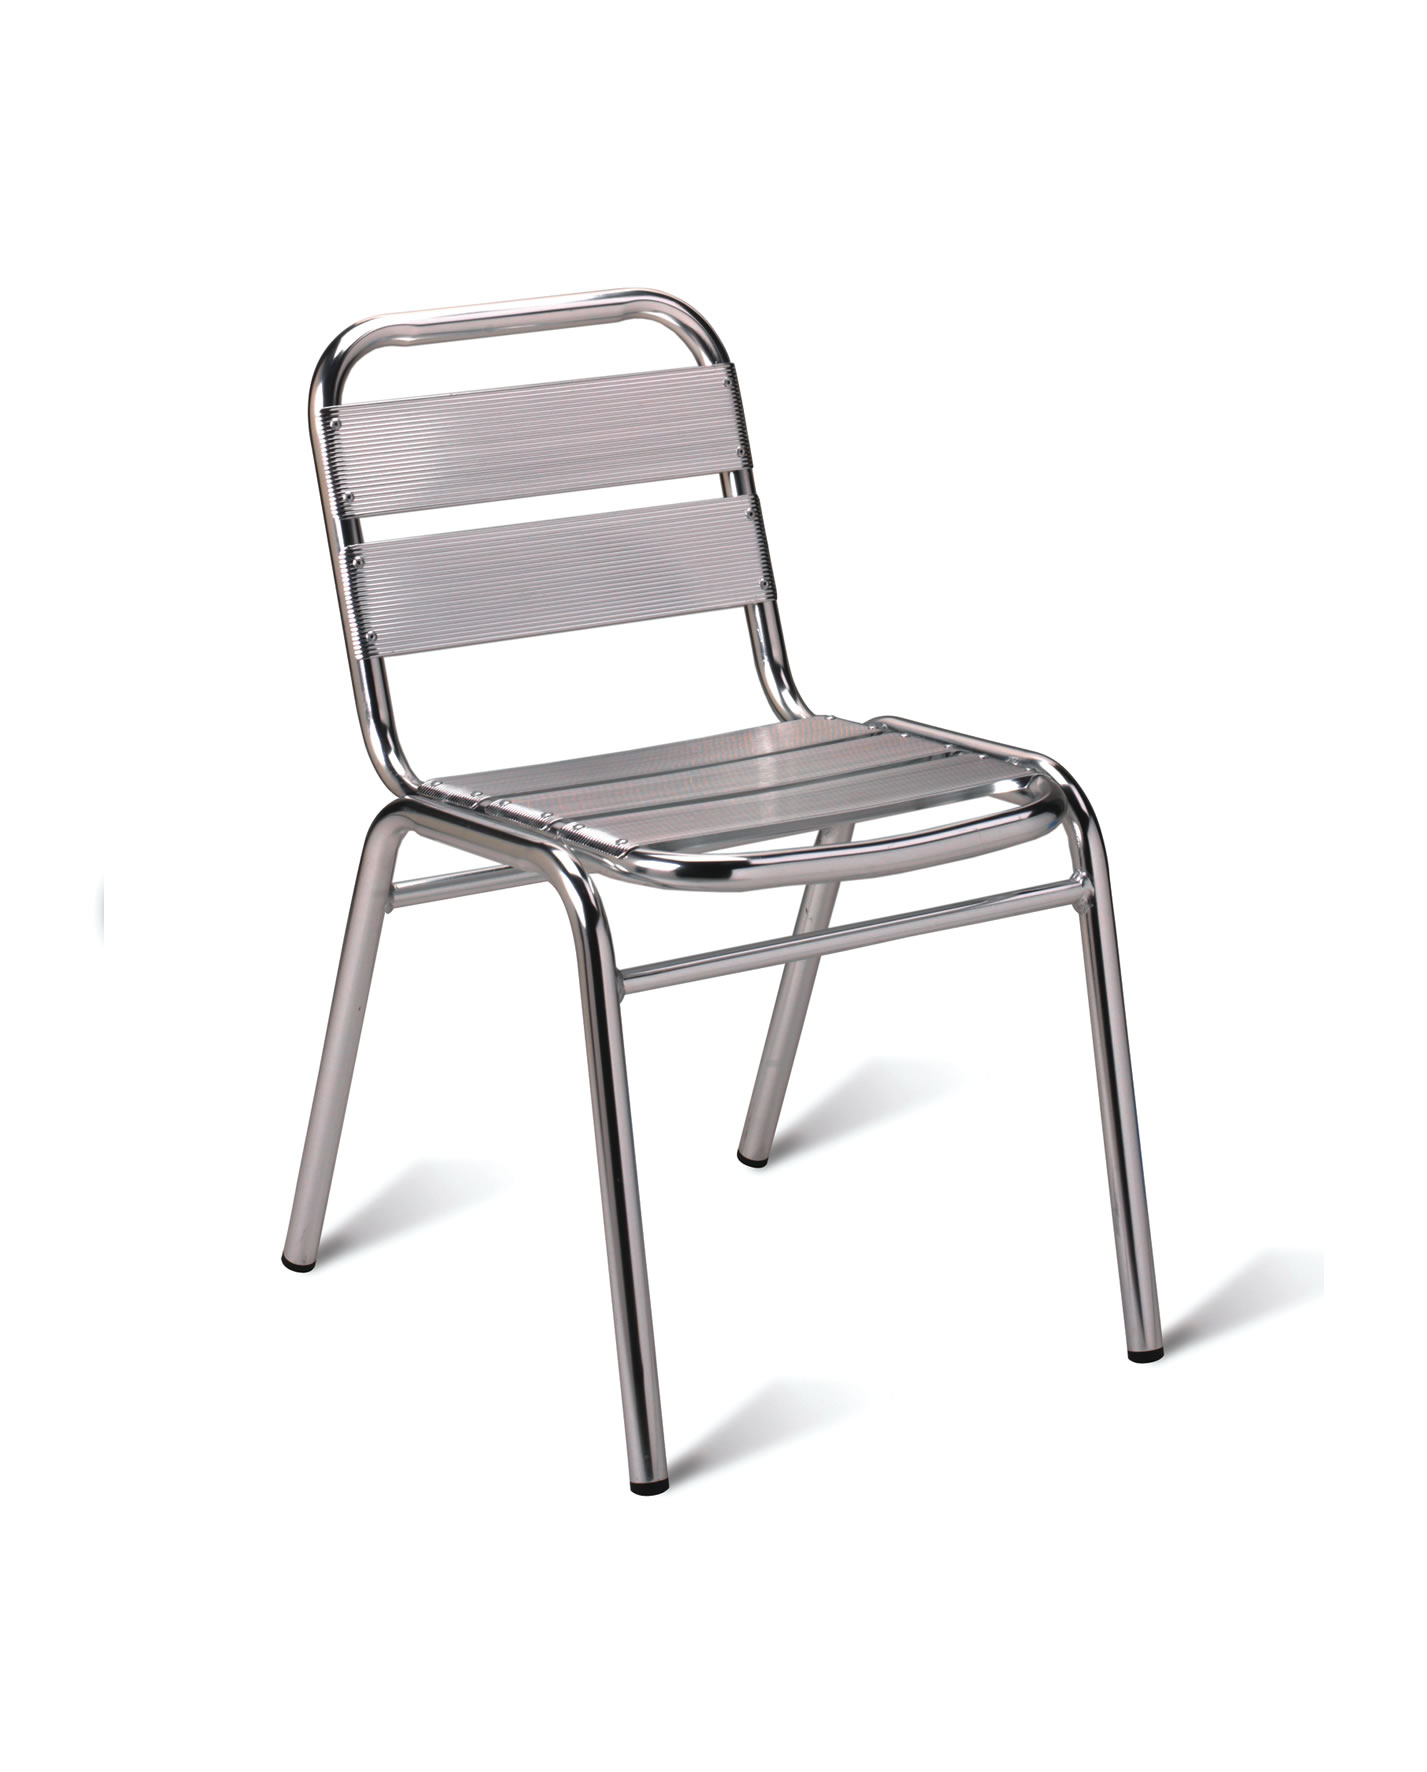 1894 ALUMINIUM SIDE CHAIR